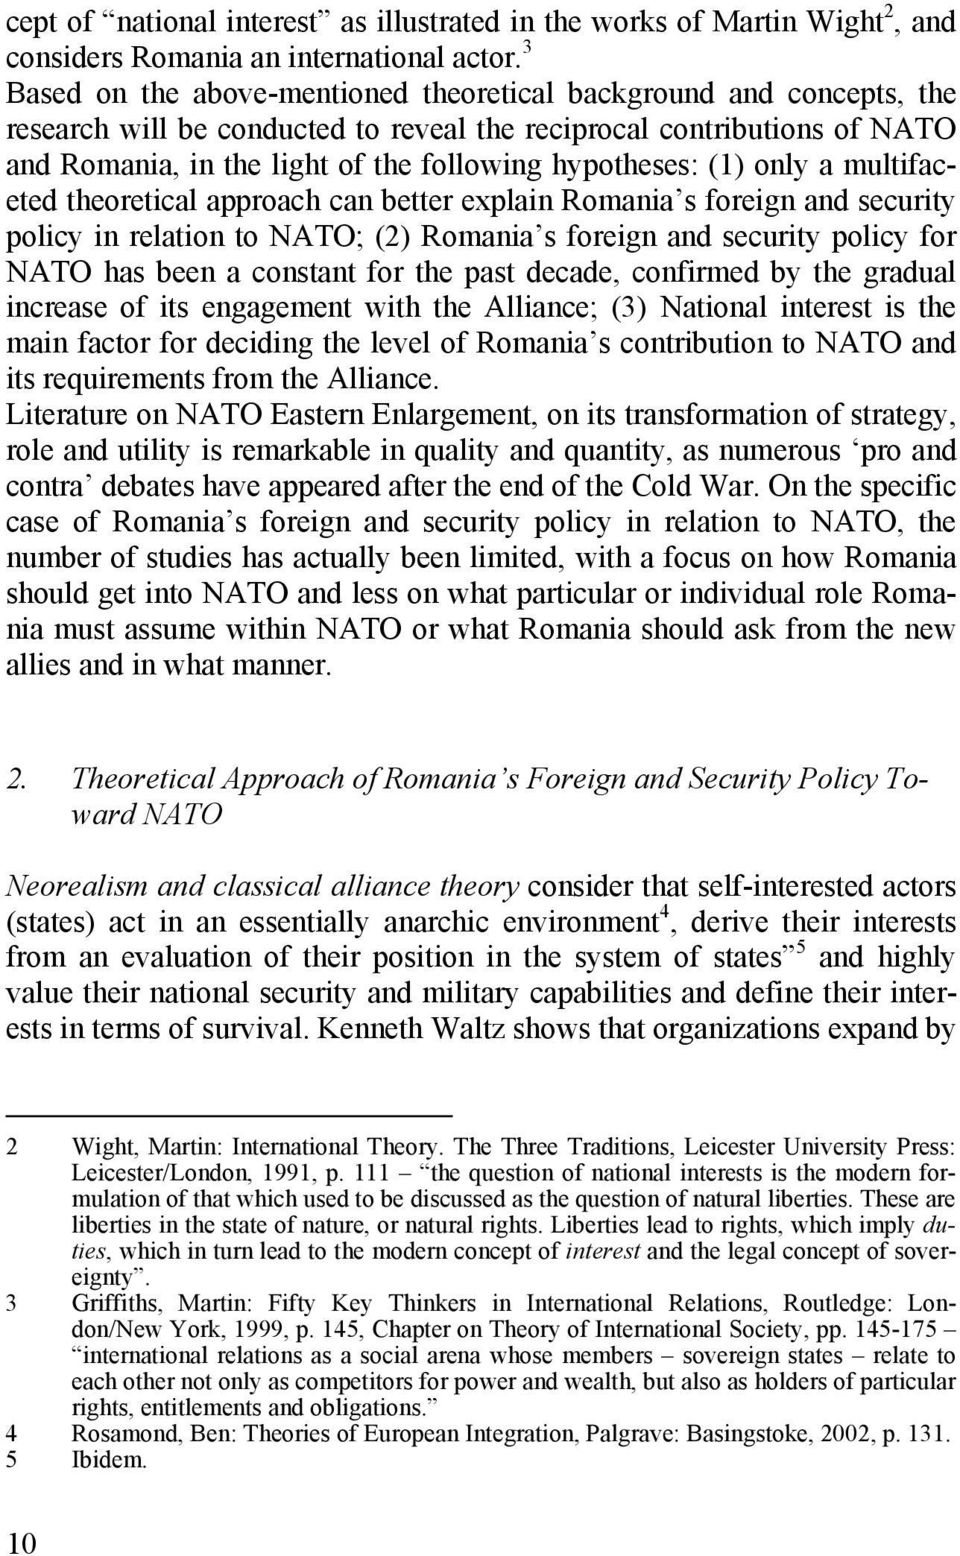 hypotheses: (1) only a multifaceted theoretical approach can better explain Romania s foreign and security policy in relation to NATO; (2) Romania s foreign and security policy for NATO has been a